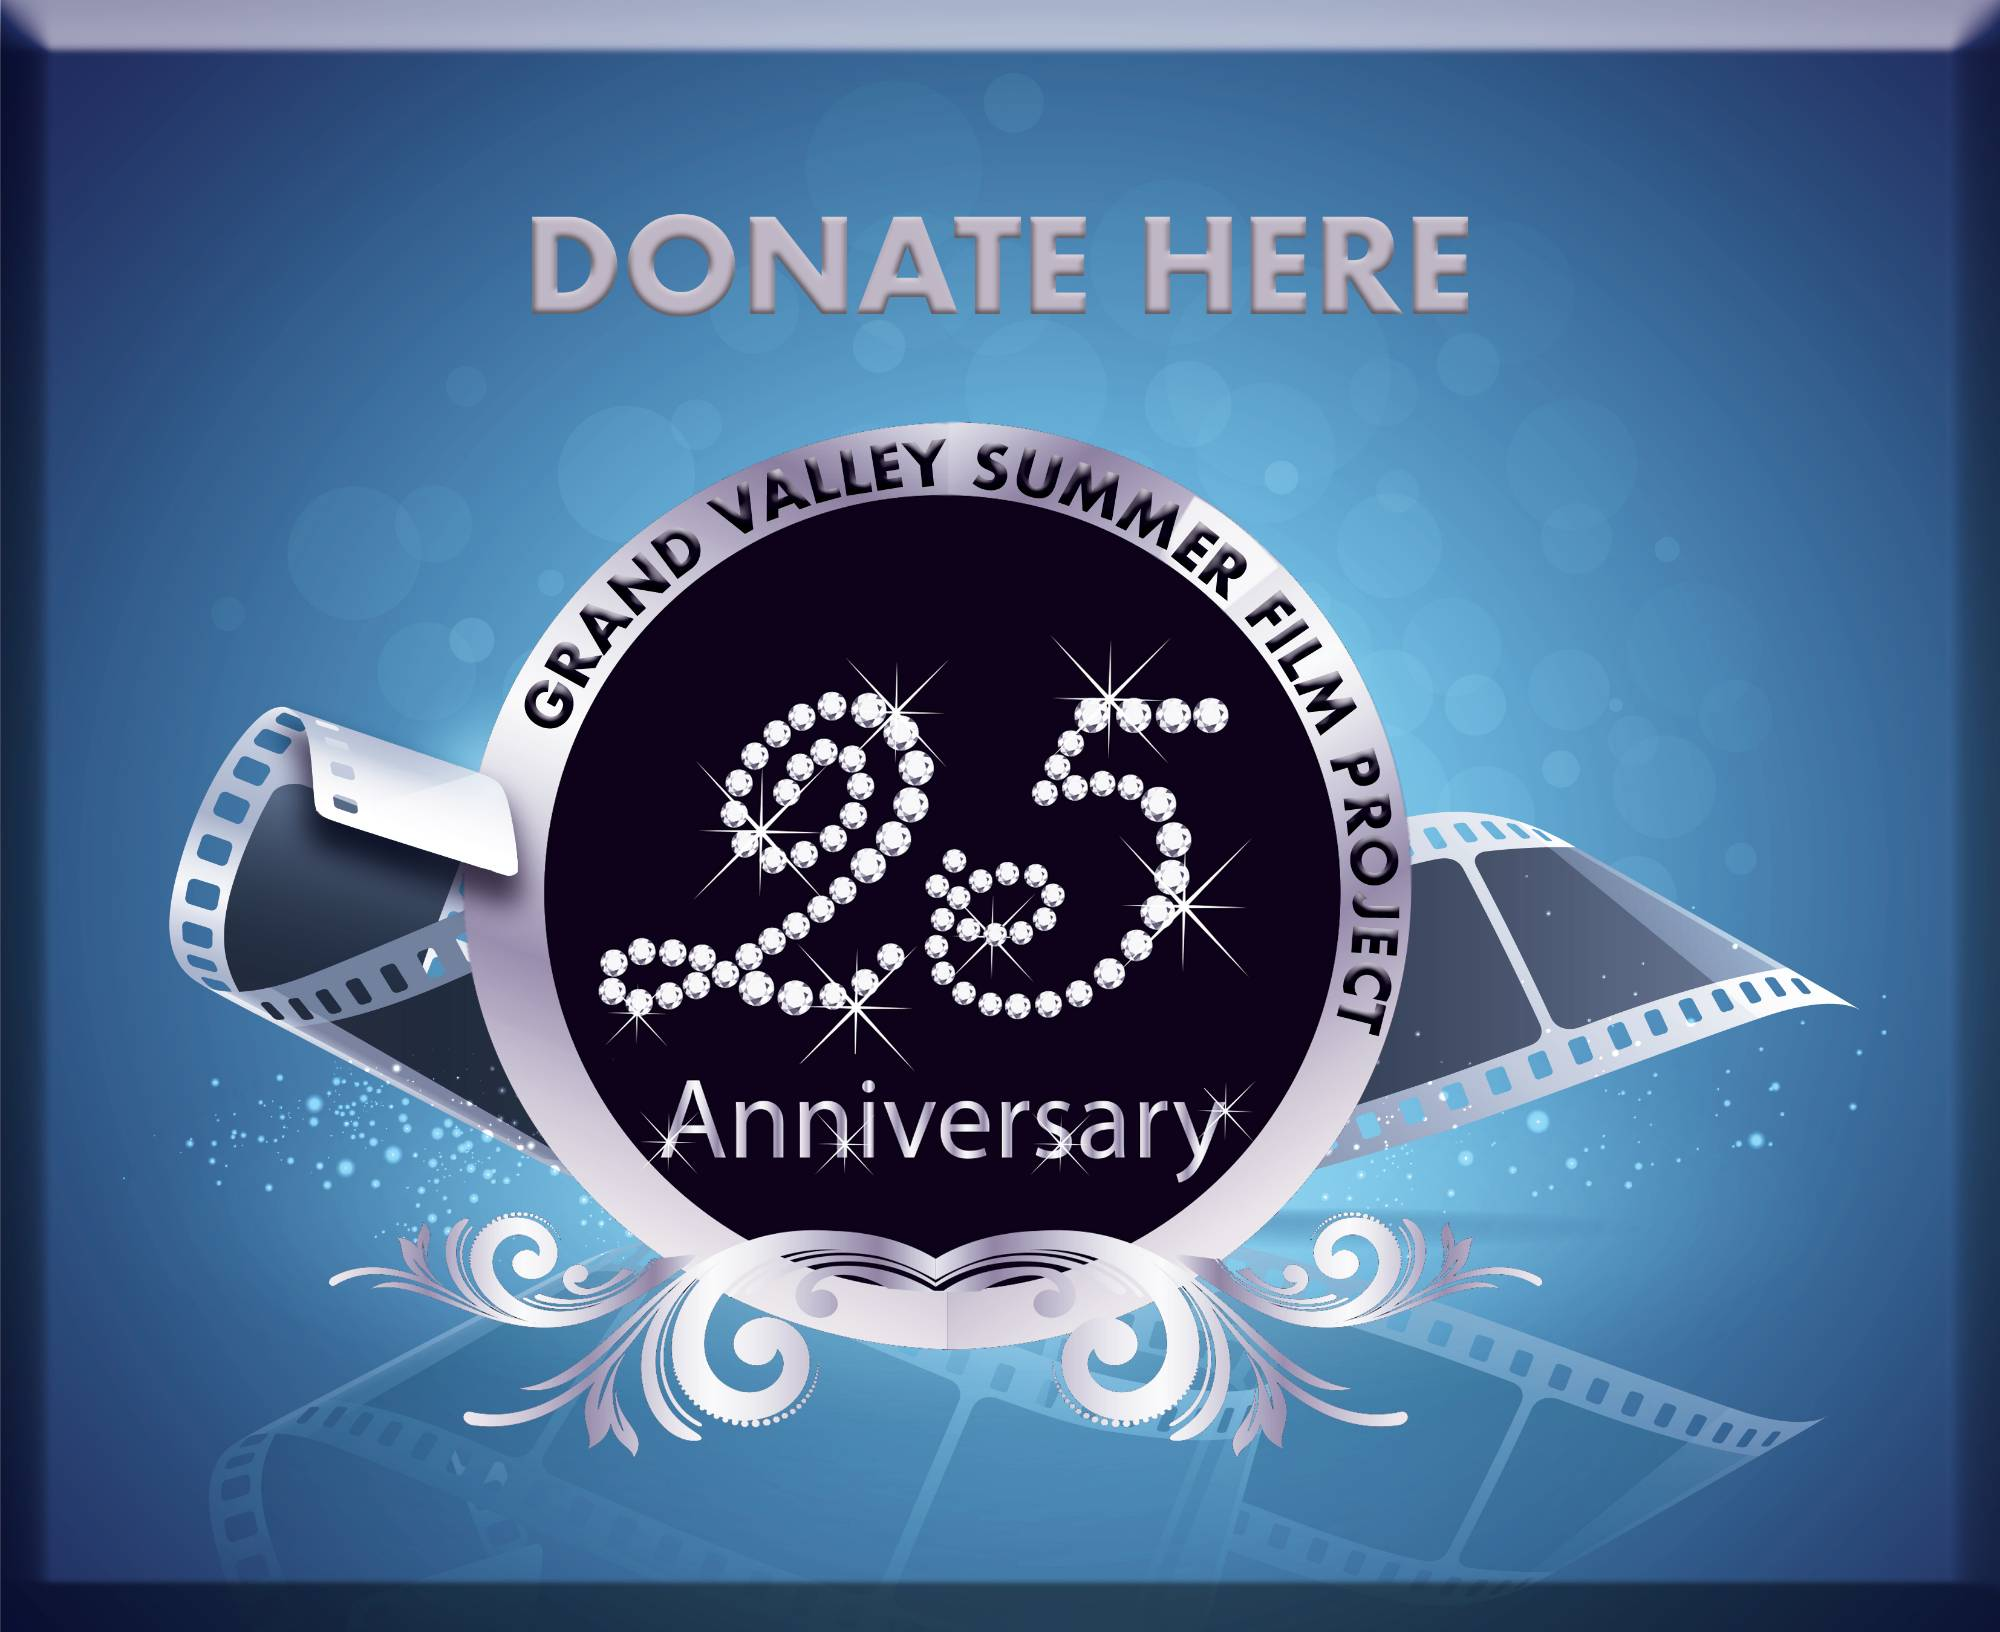 DONATE HERE GVSU Summer Film Project 25 Anniversary